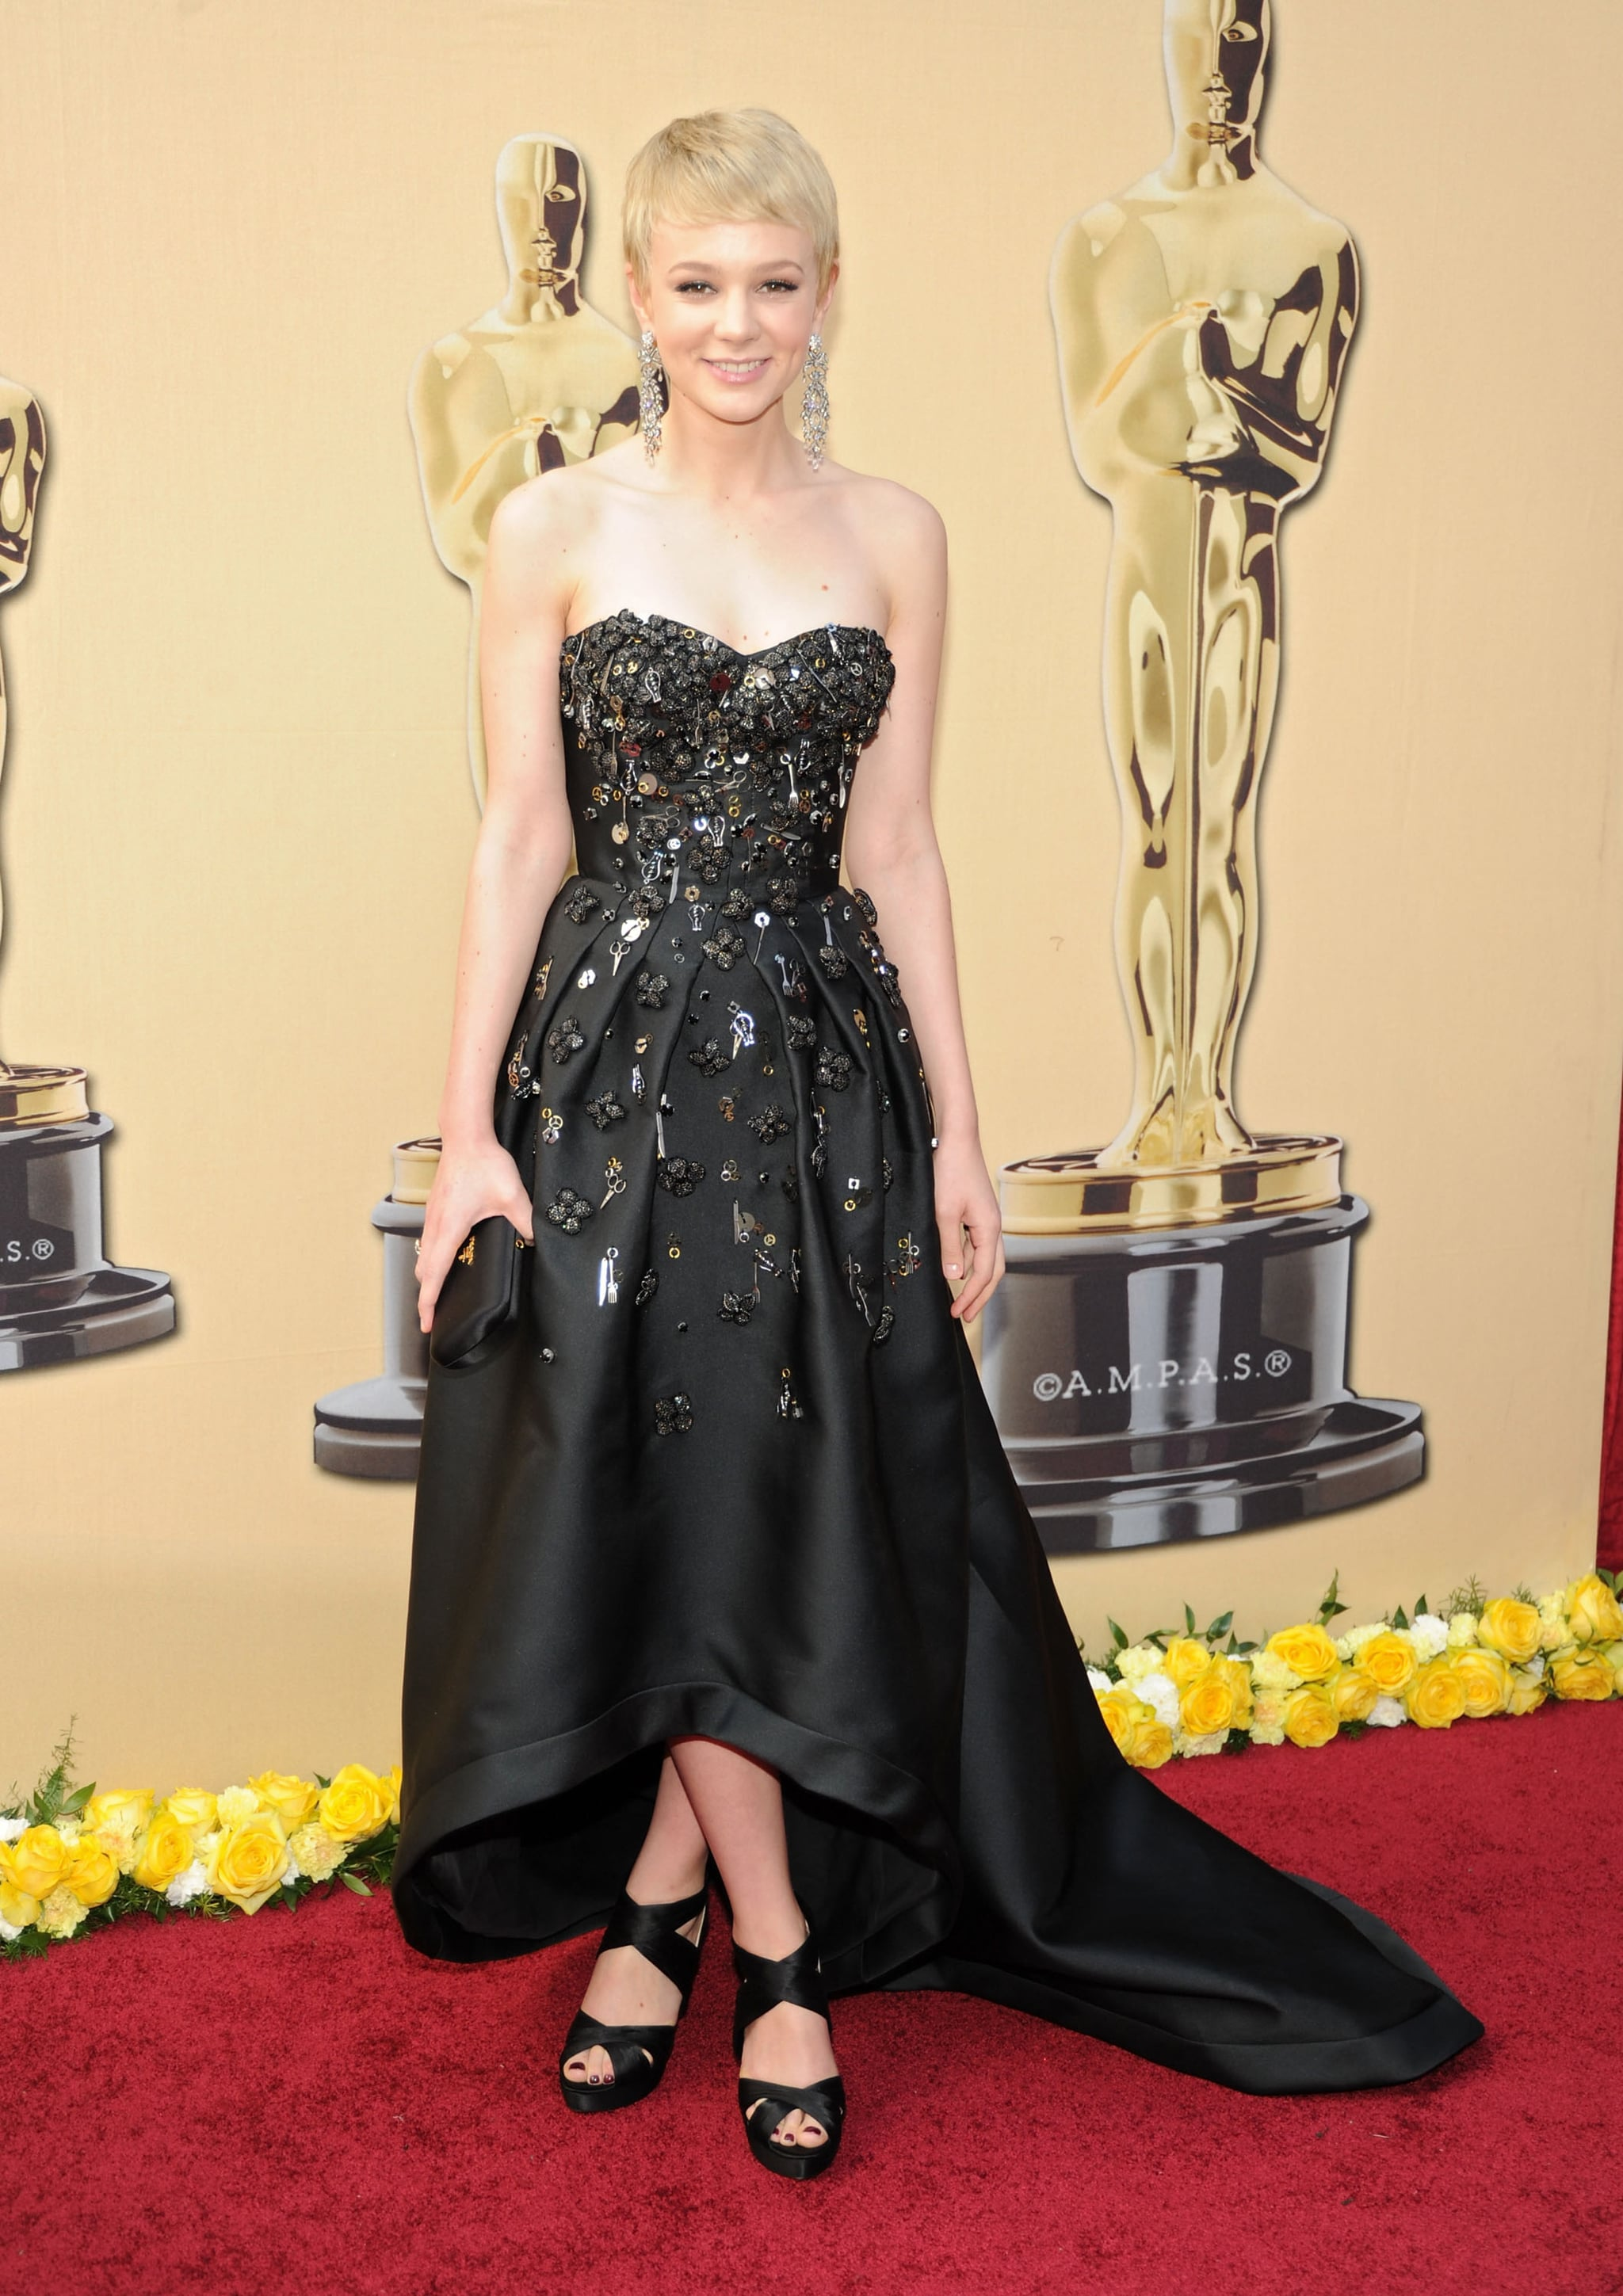 Carey Mulligan in a Prada Gown at the 2010 Oscars